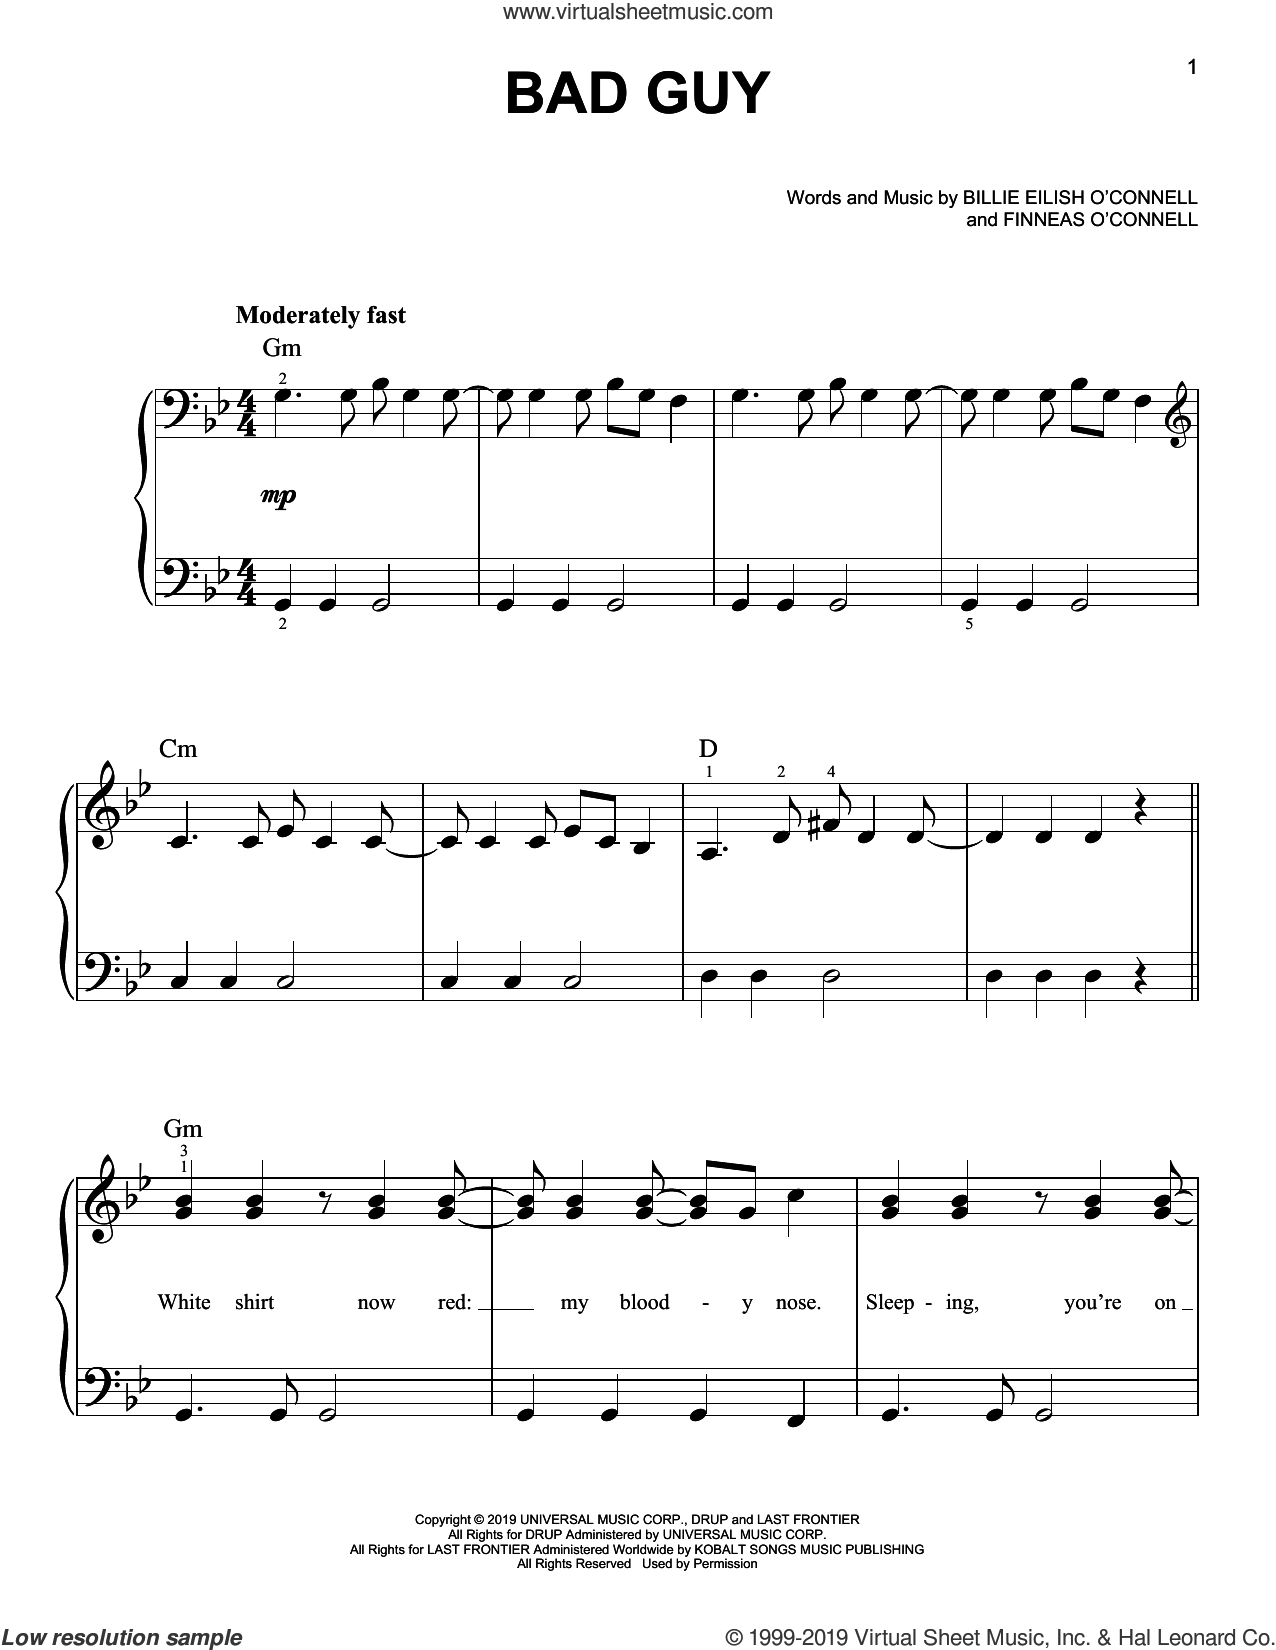 bad guy sheet music for piano solo by Billie Eilish, easy skill level